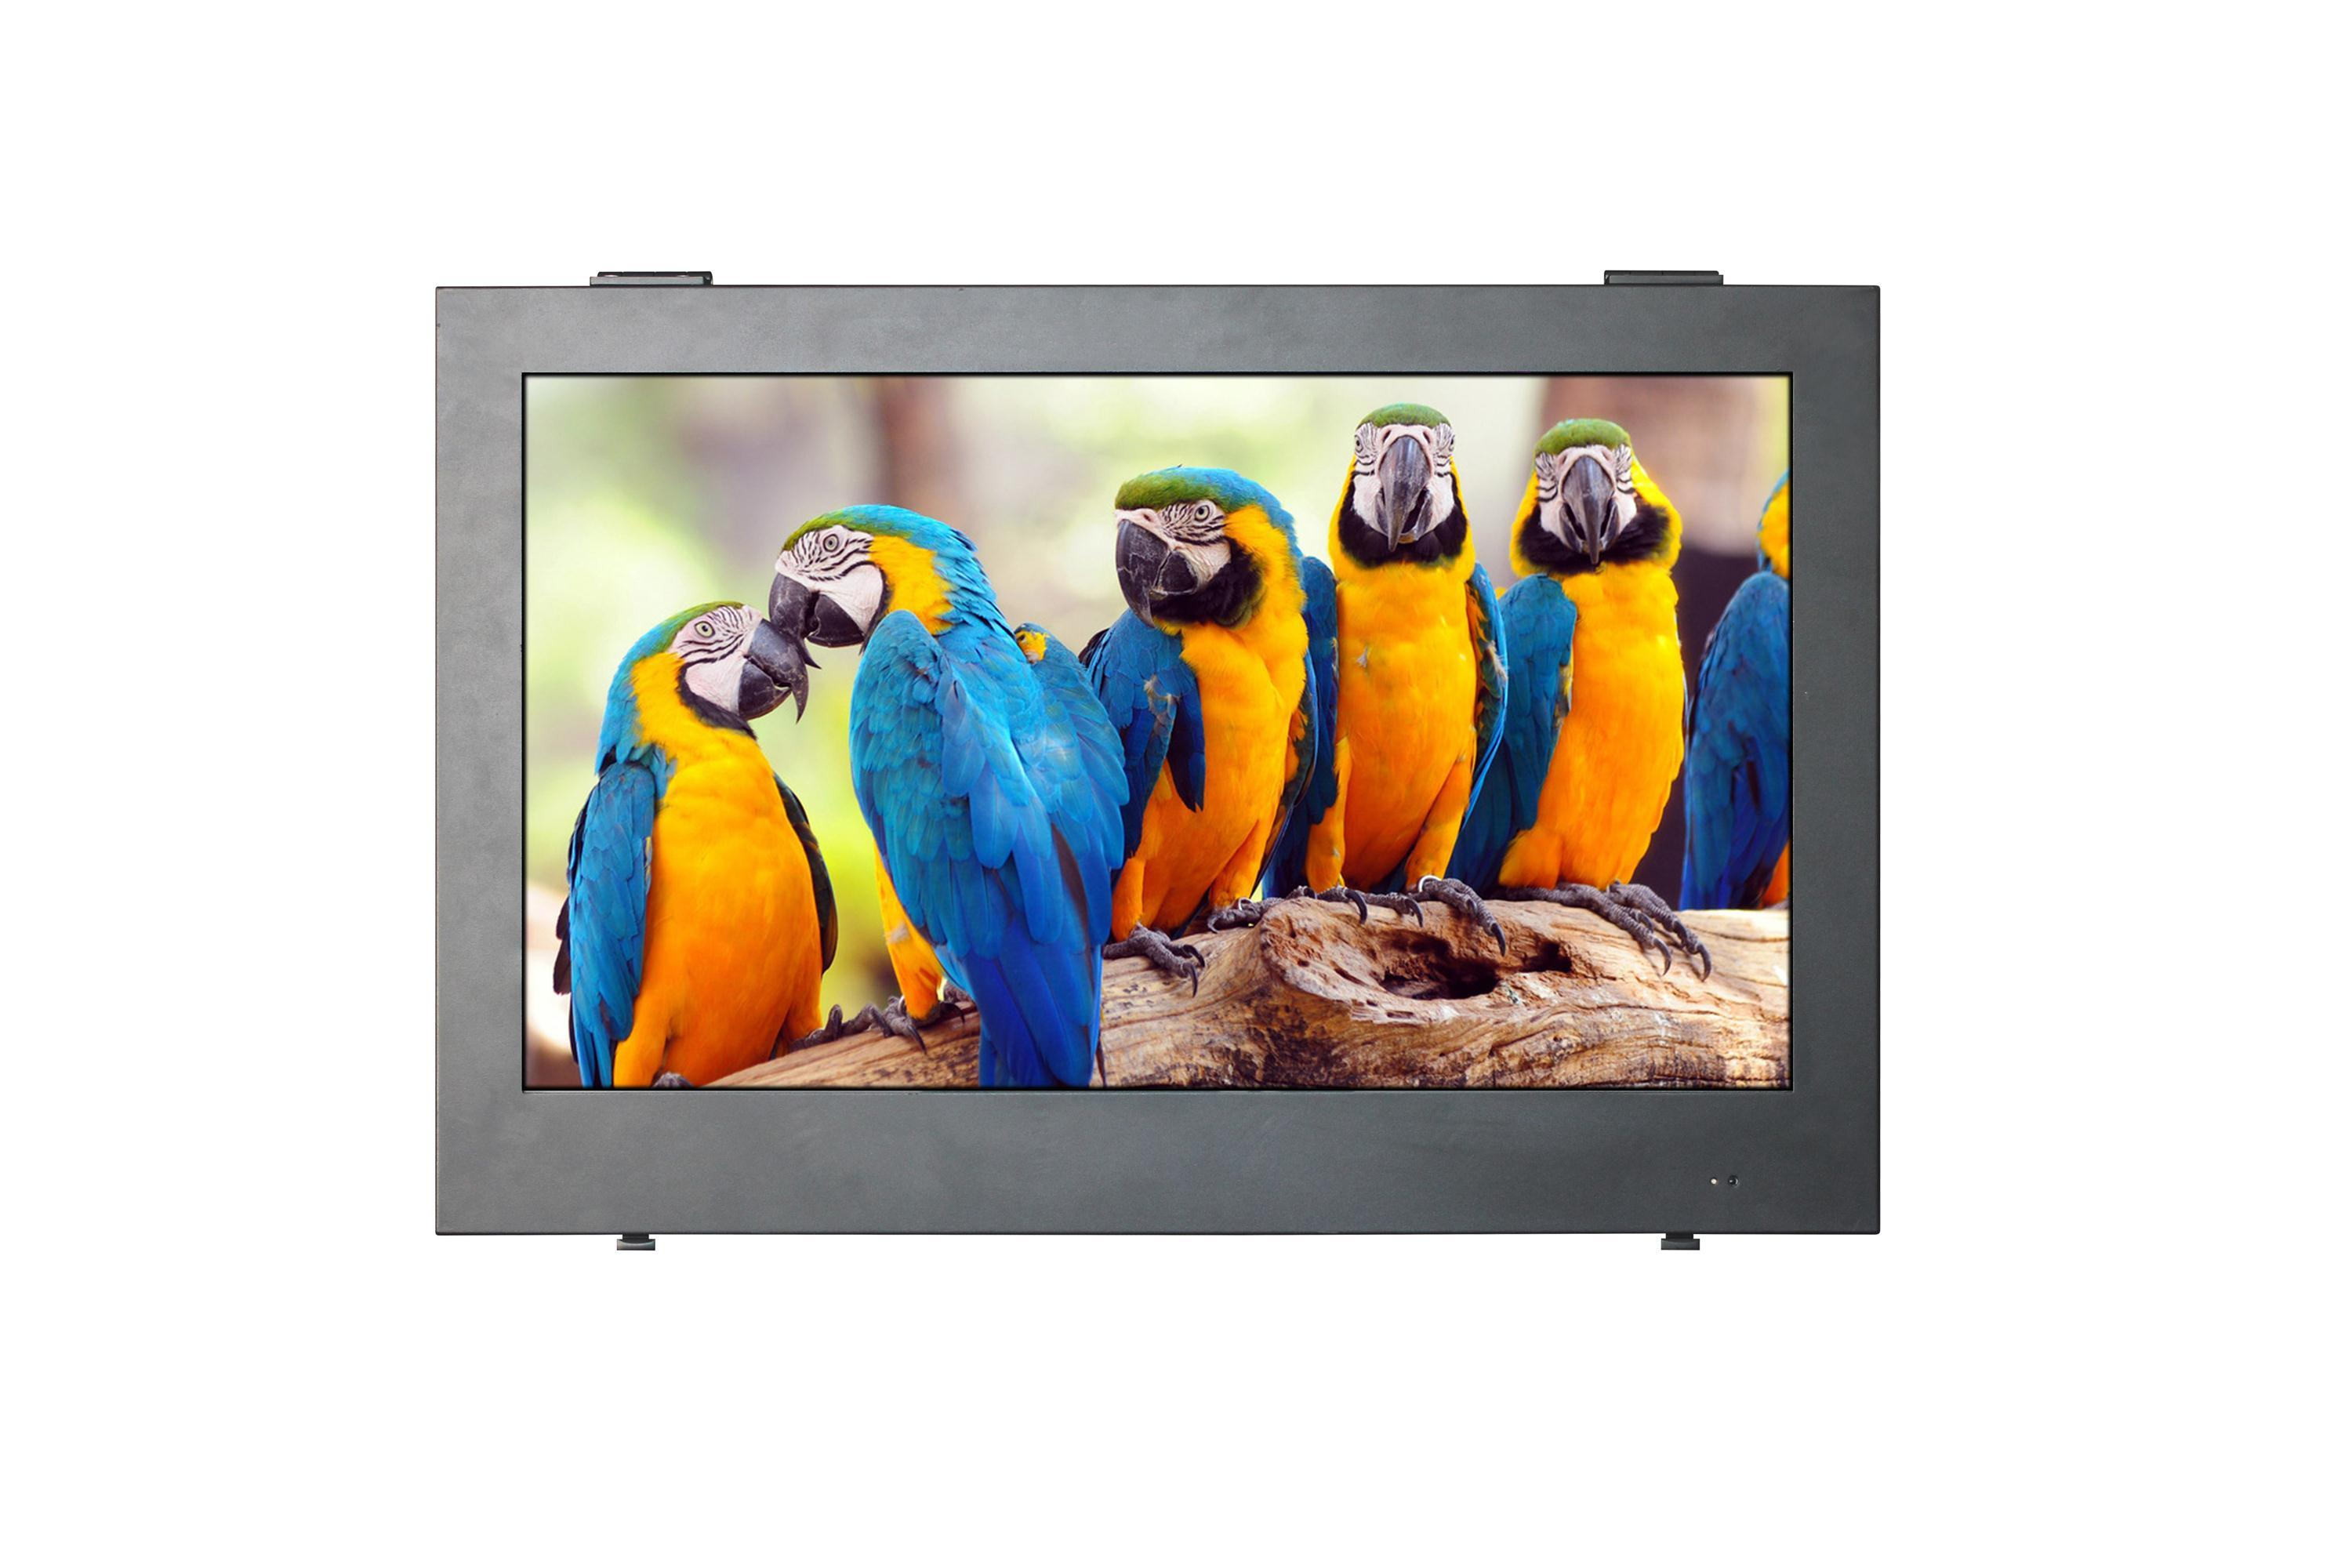 42 Inch Outdoor Waterproof Smart FHD LED TV